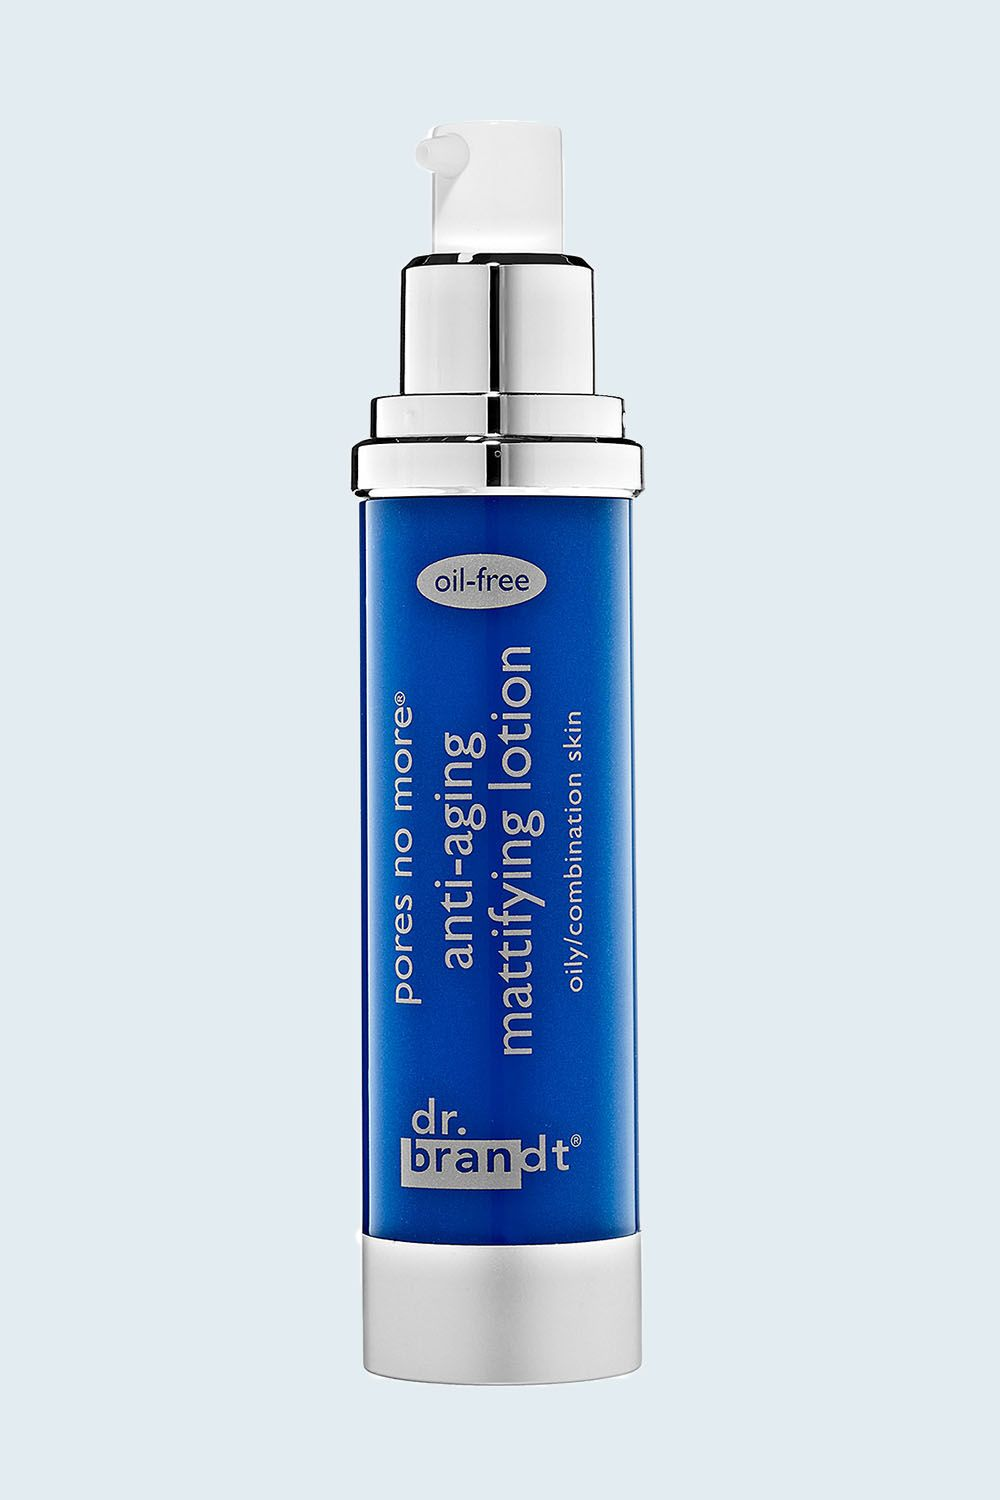 """<p>If you prefer a lotion to a gel cream—<span class=""""redactor-invisible-space"""" data-verified=""""redactor"""" data-redactor-tag=""""span"""" data-redactor-class=""""redactor-invisible-space""""></span>or anti-aging is top of mind for your skincare routine—<span class=""""redactor-invisible-space"""" data-verified=""""redactor"""" data-redactor-tag=""""span"""" data-redactor-class=""""redactor-invisible-space""""></span>this fast-absorbing formula reduces the appearance of fine lines and wrinkles while sopping up excess oil.</p><p><span class=""""redactor-invisible-space"""" data-verified=""""redactor"""" data-redactor-tag=""""span"""" data-redactor-class=""""redactor-invisible-space"""">Dr. Brandt Skincare pores no more anti-aging mattifying lotion, $61&#x3B; <a href=""""http://bit.ly/2lhaUAn"""" target=""""_blank"""" data-tracking-id=""""recirc-text-link"""">sephora.com</a>.<span class=""""redactor-invisible-space"""" data-verified=""""redactor"""" data-redactor-tag=""""span"""" data-redactor-class=""""redactor-invisible-space""""></span><br></span></p>"""